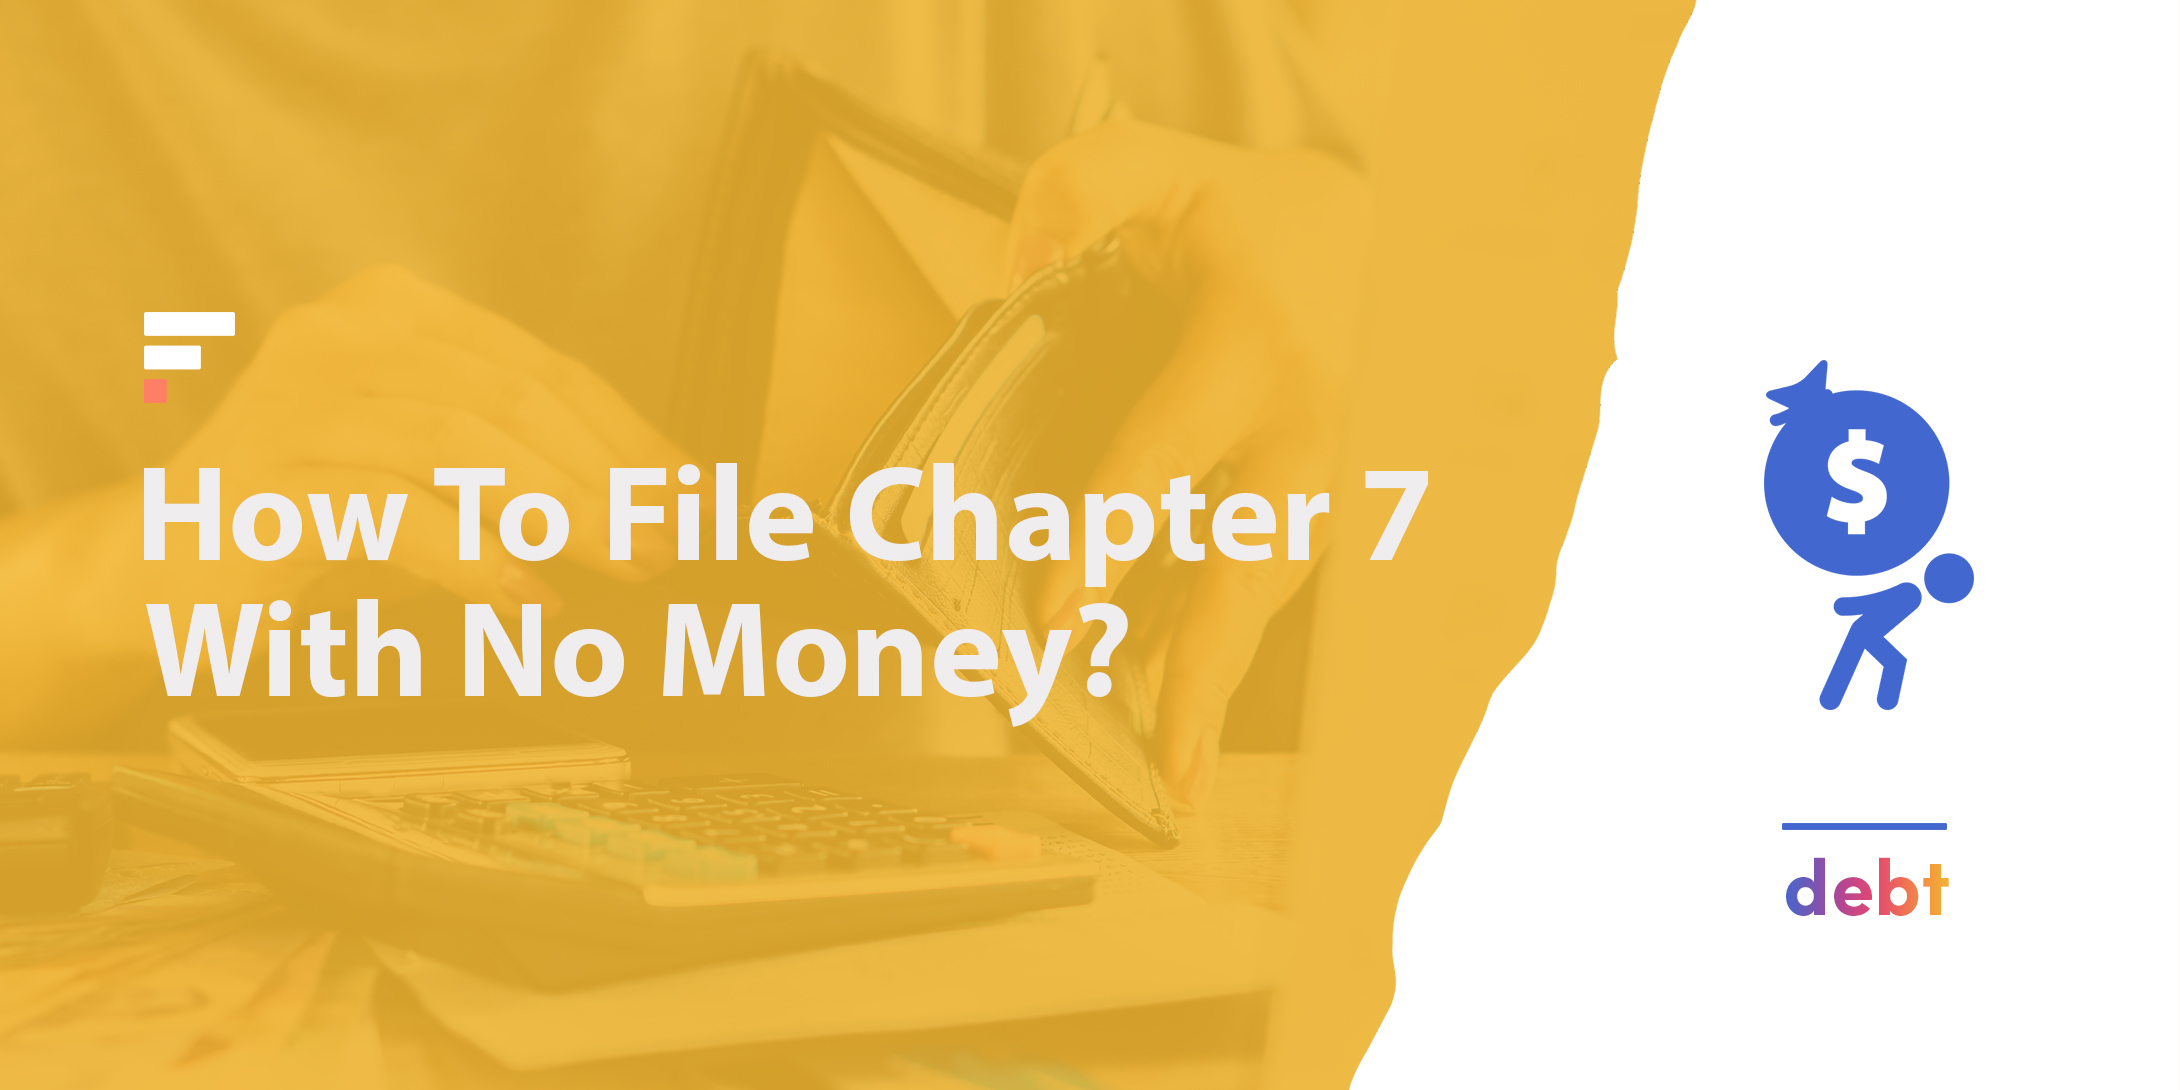 How to file Chapter 7 with no money?